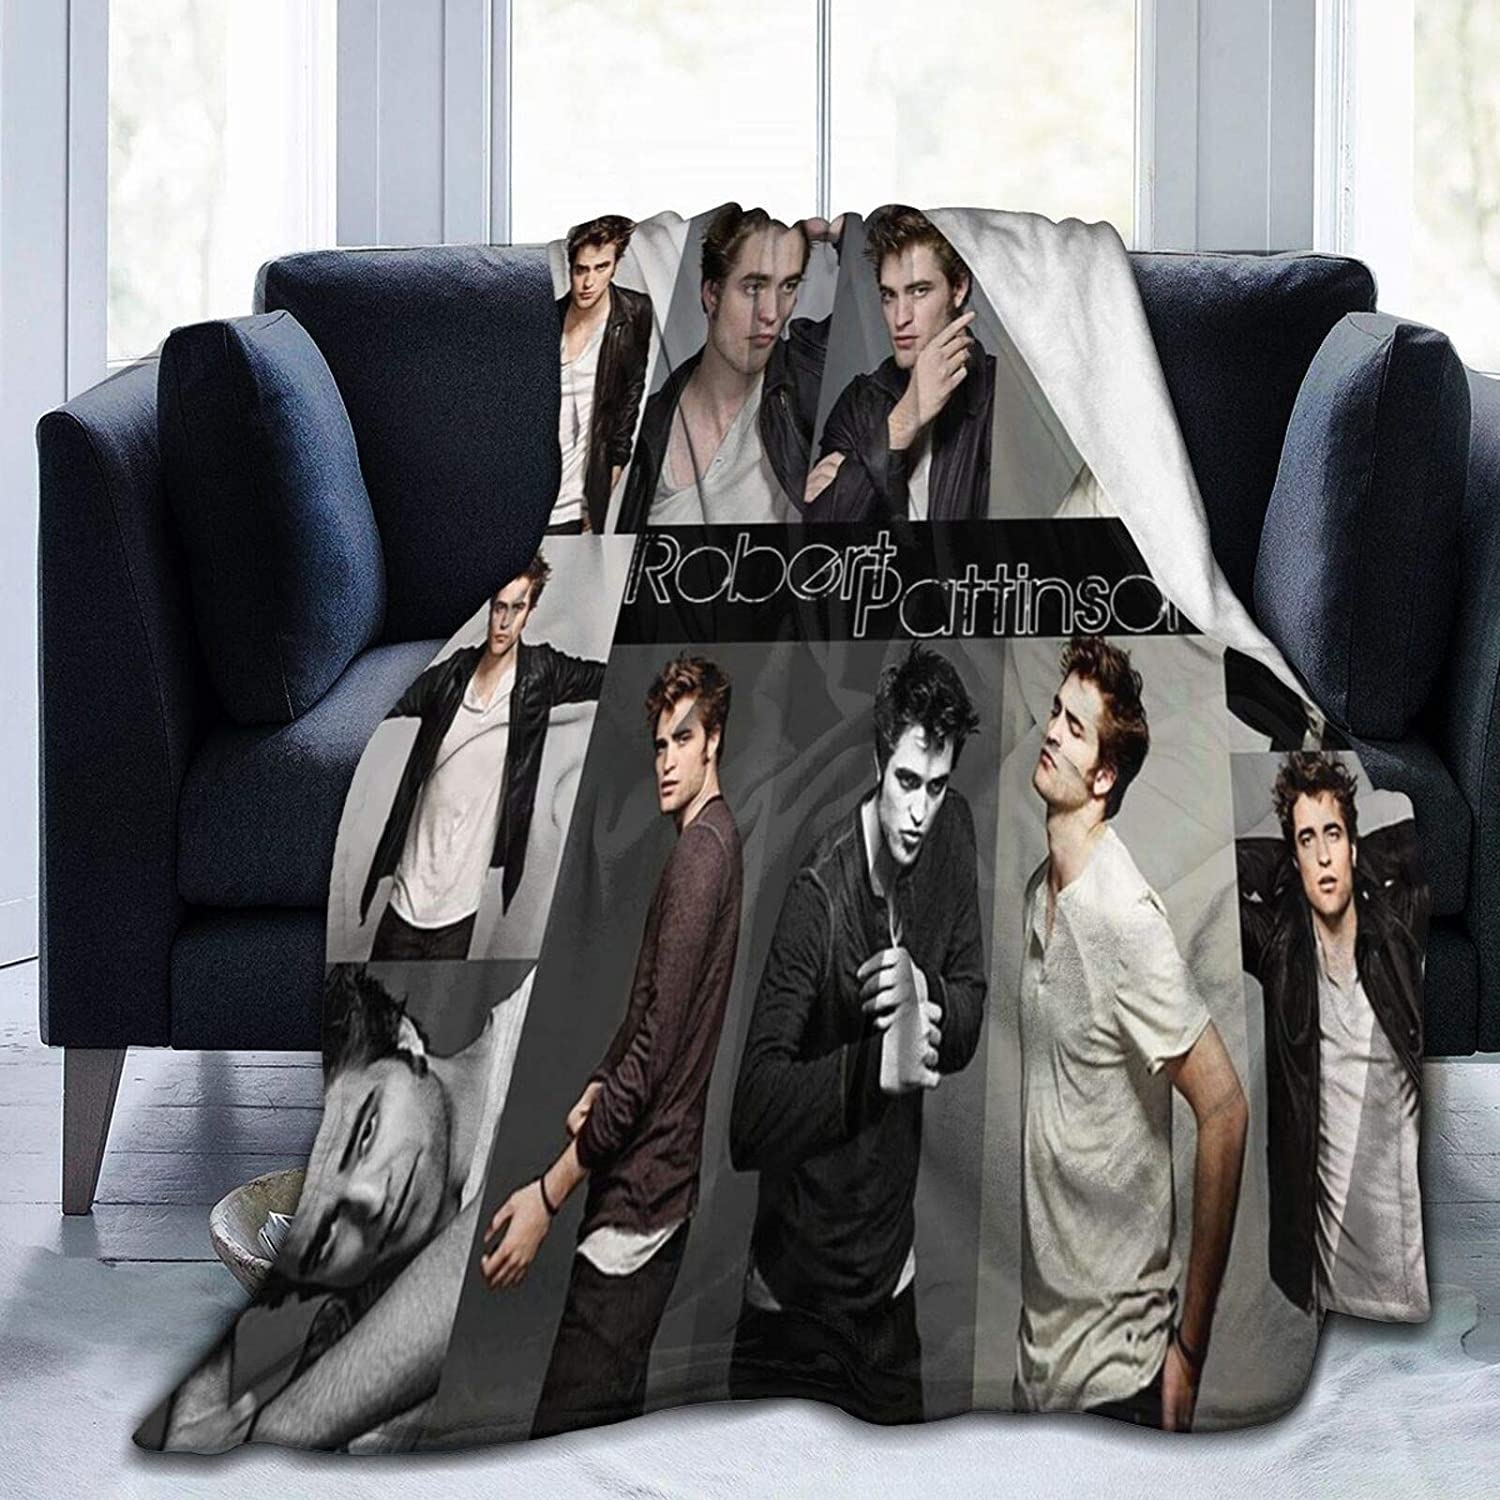 "Wakaltk Robert Pattinson Kids Adults Ultra-Soft Micro Fleece Blanket Throw All Season Fuzzy Lightweight Throw Blankets for Office Company Home Couch Bed Sofa 80"" x60"